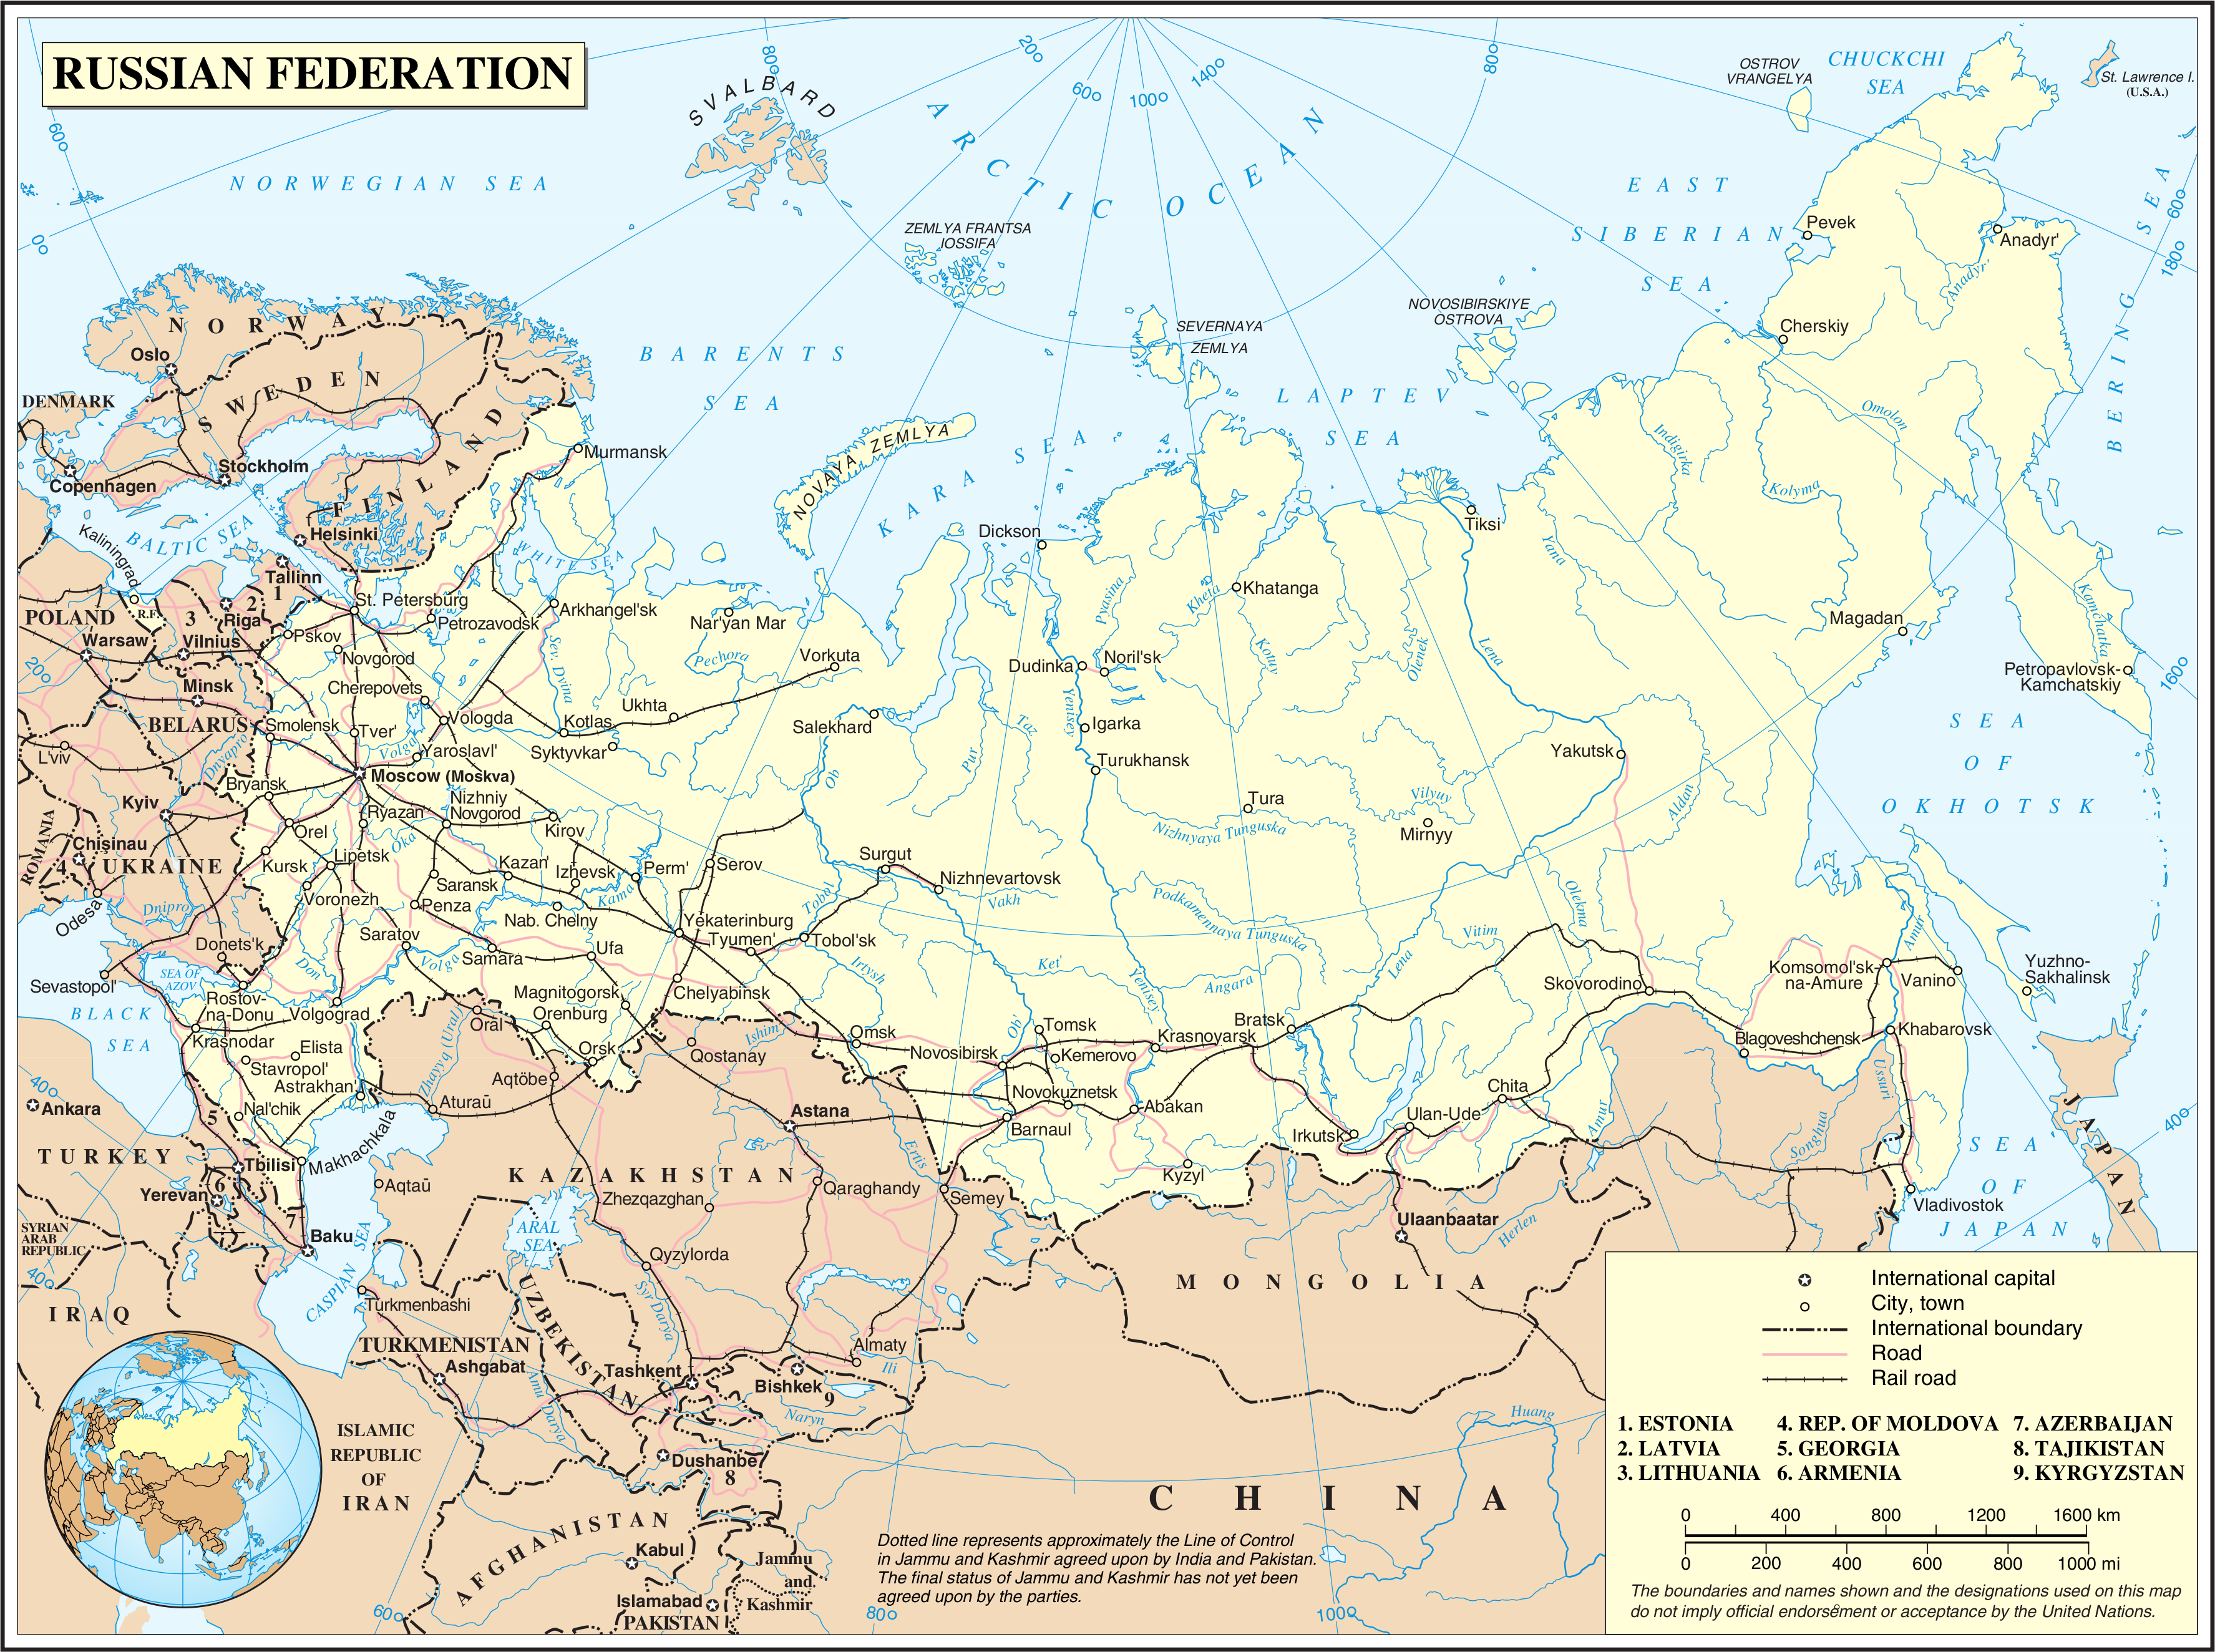 File:Un-russia.png - Wikipedia, the free encyclopedia